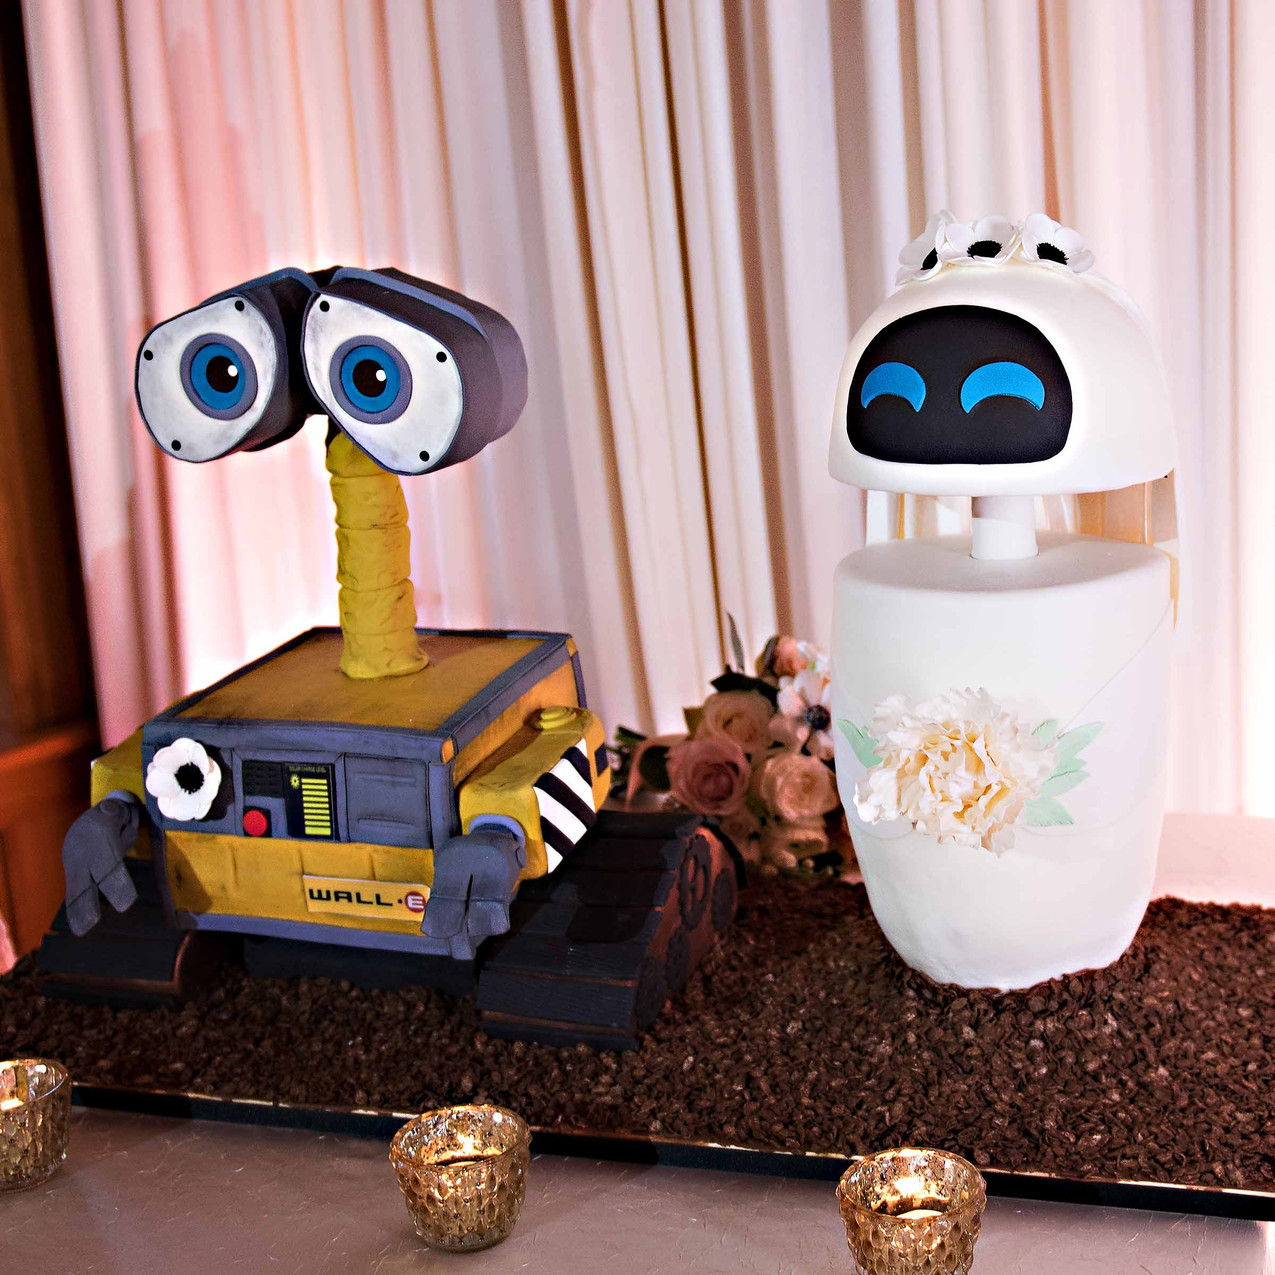 Wallie and Eve grooms cake